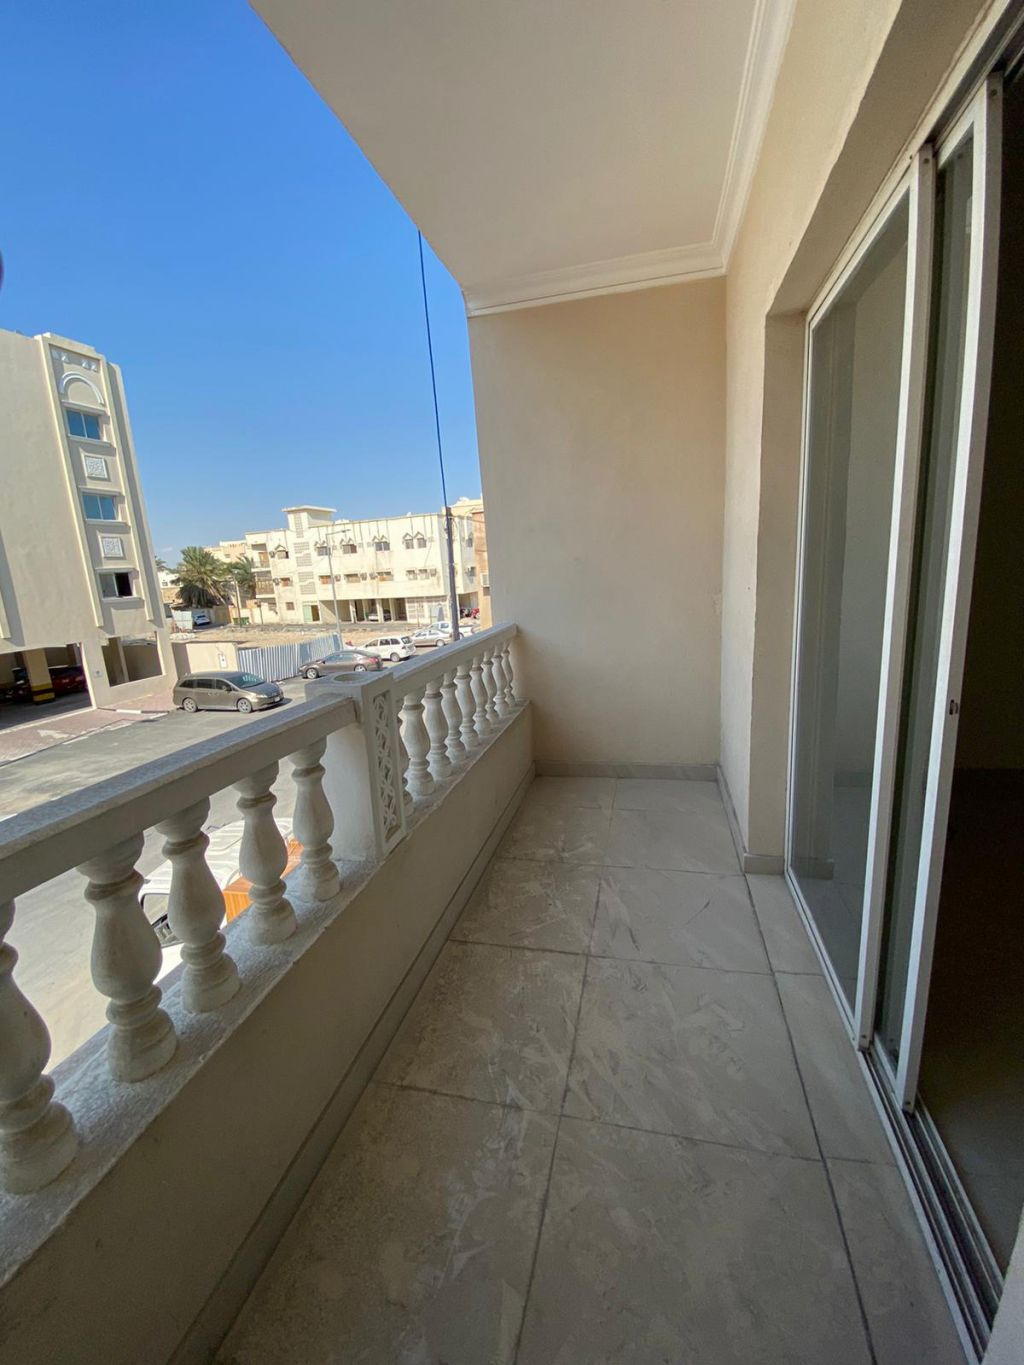 Residential Property 3 Bedrooms U/F Apartment  for rent in Doha-Qatar #11206 - 1  image